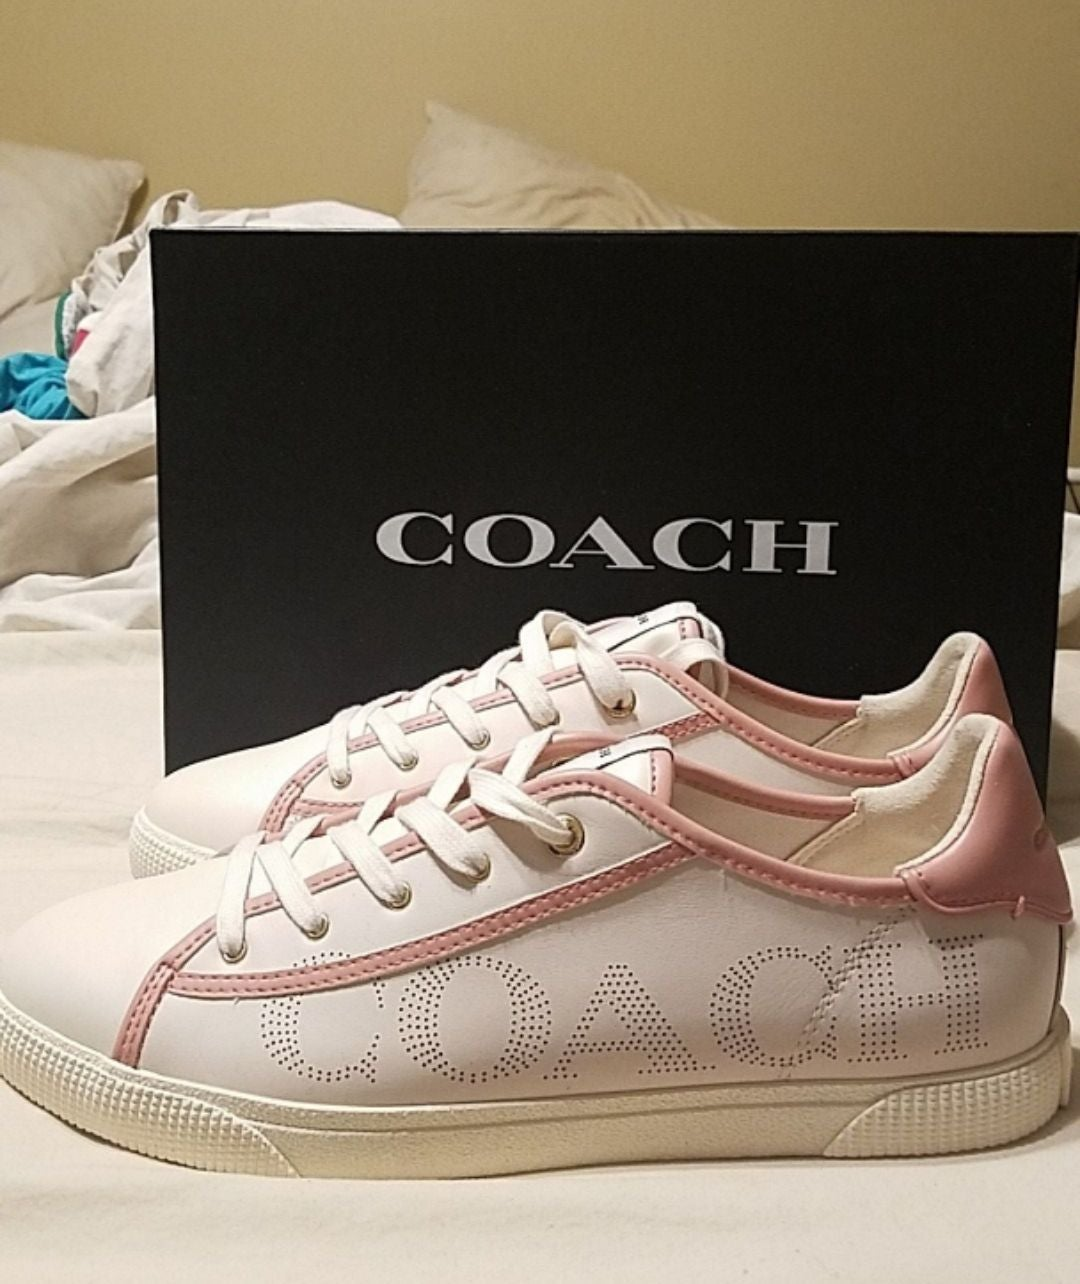 Coach shoes that never been worn